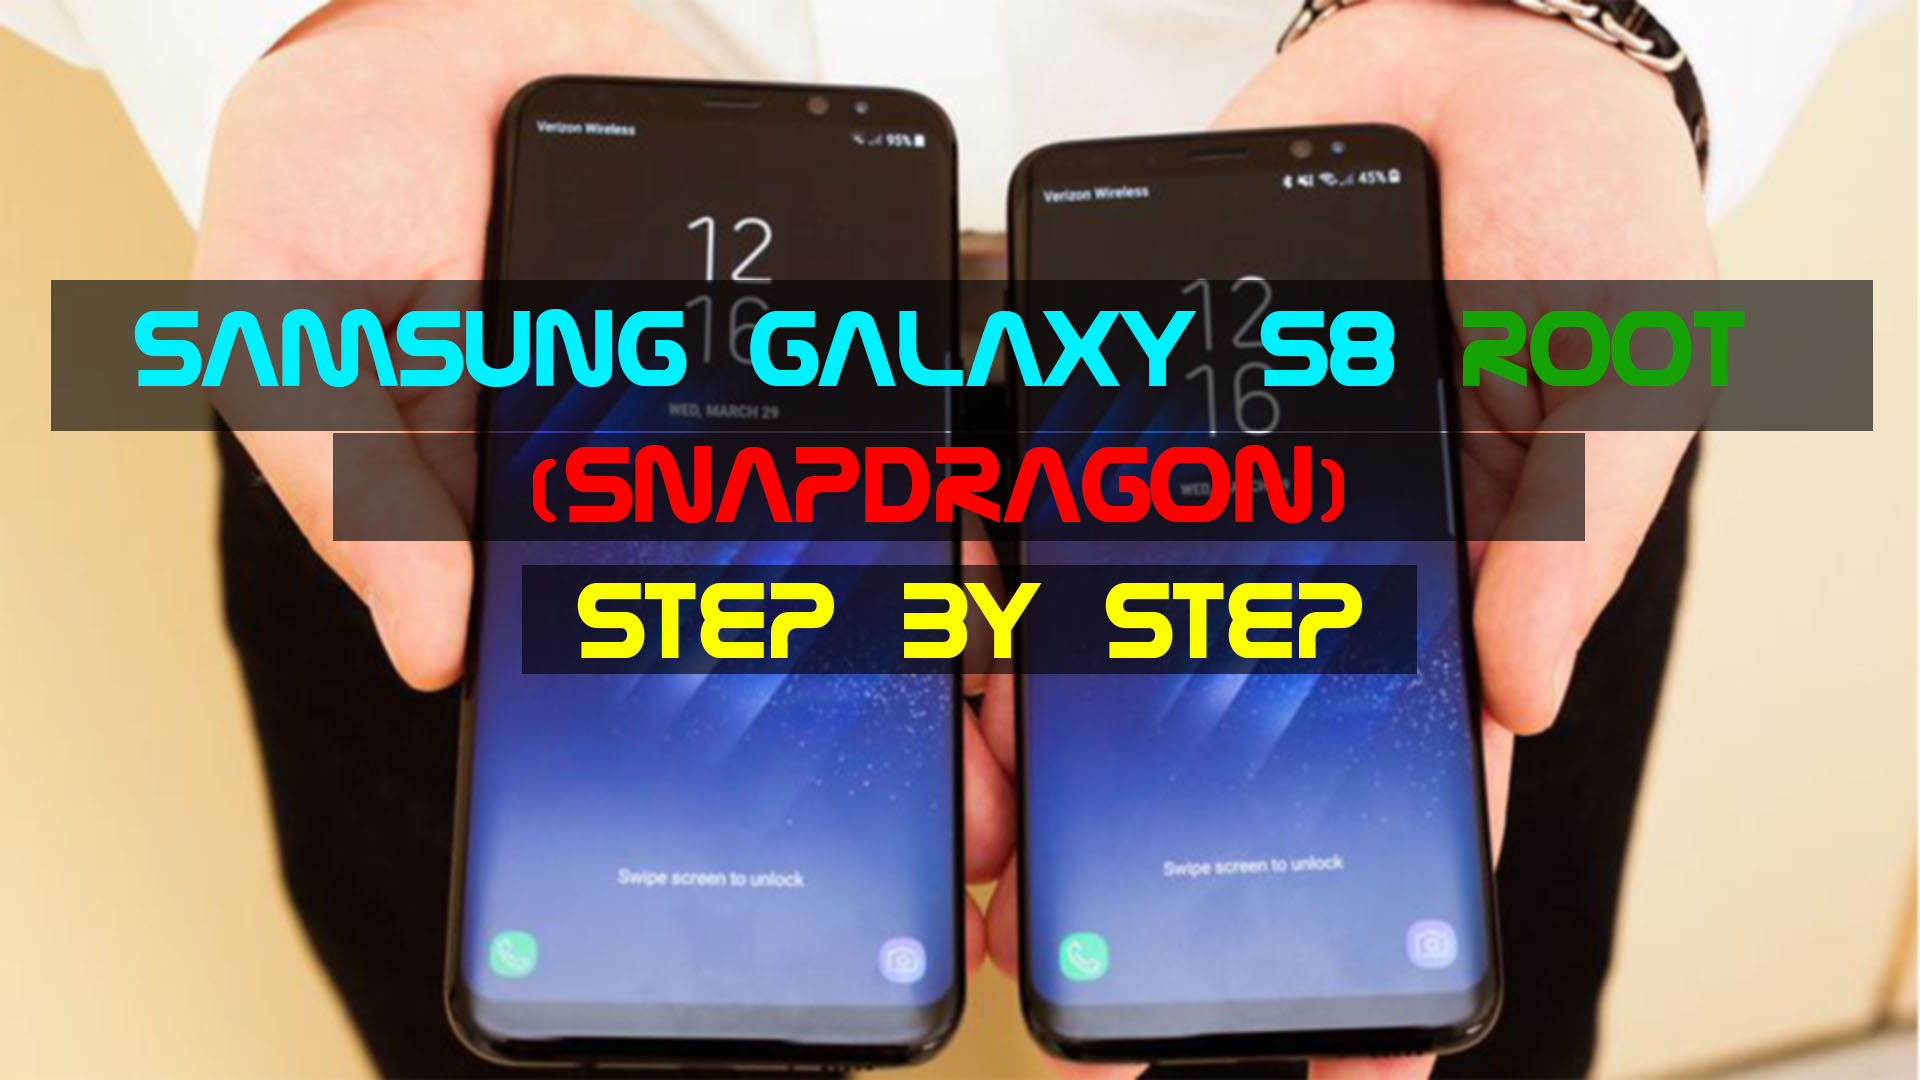 Samsung Galaxy S8 Root (Snapdragon) Step by Step | Droid-Developers